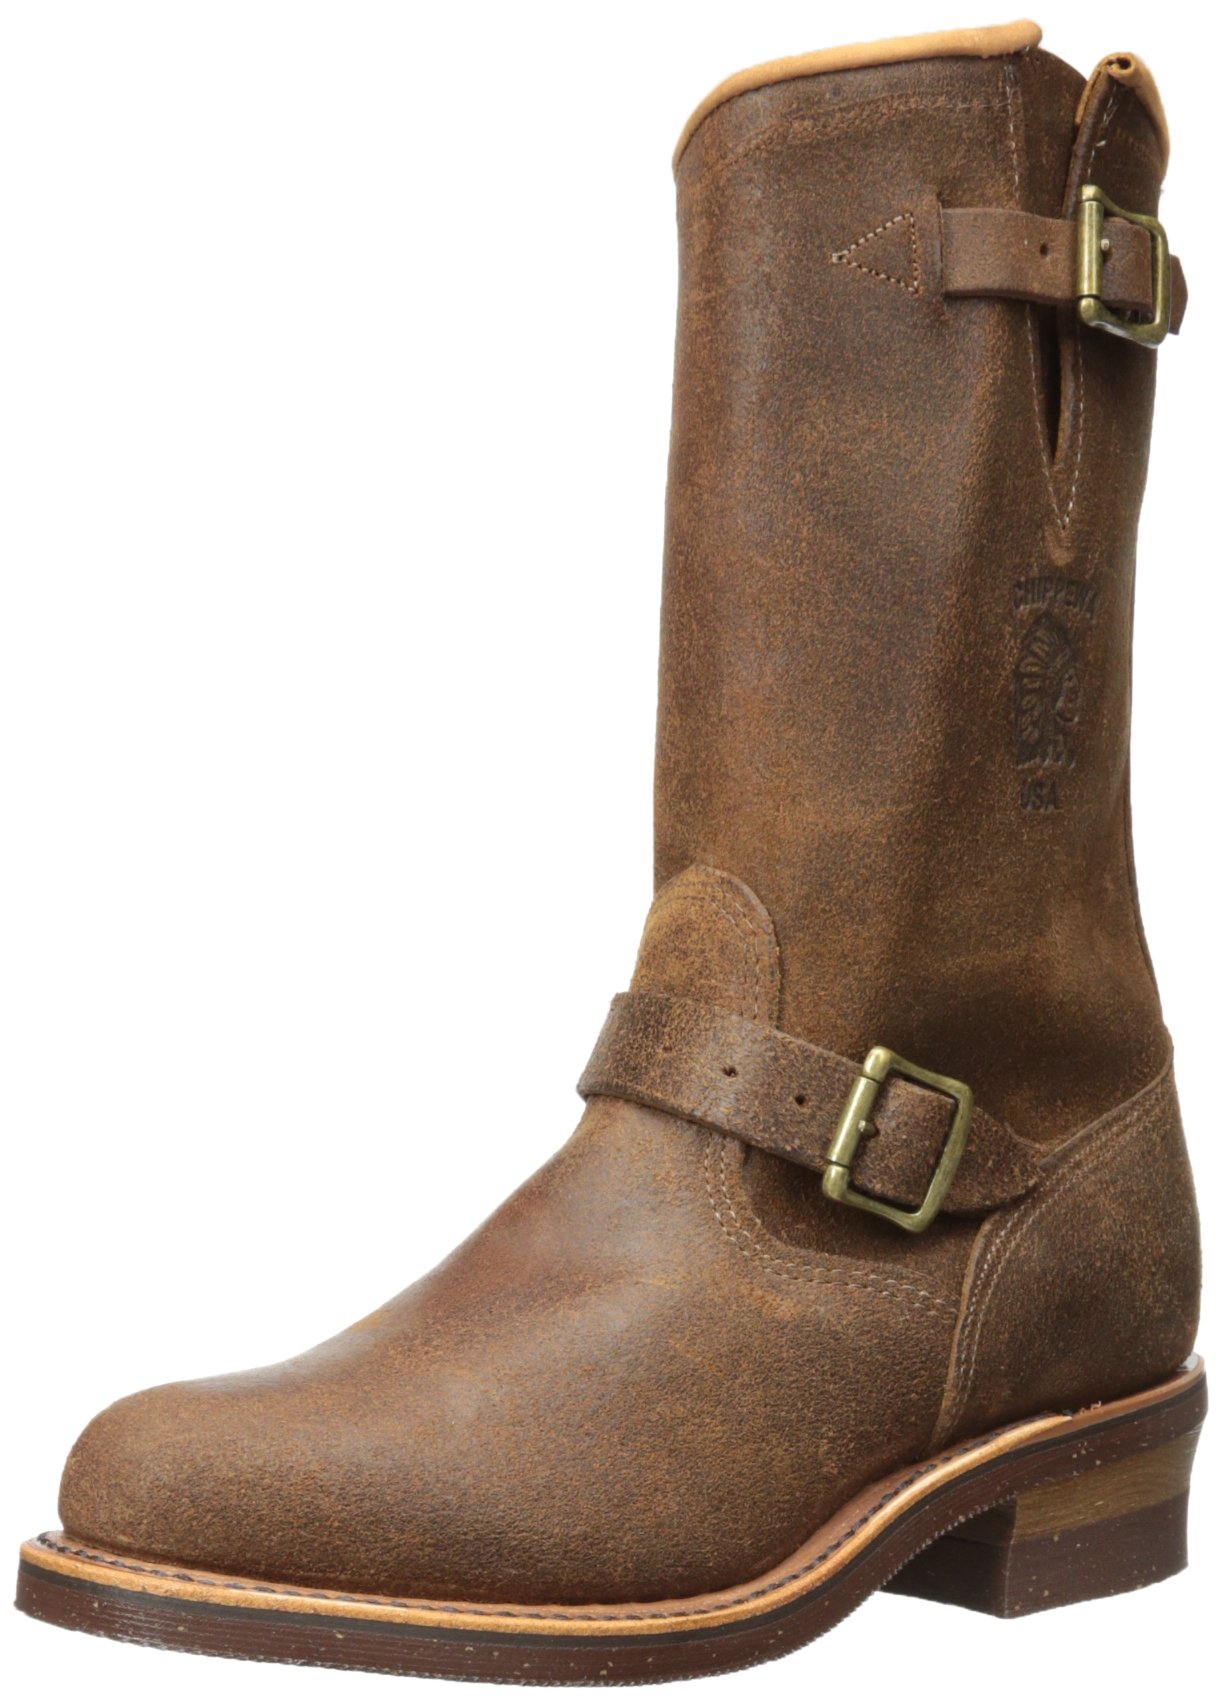 Chippewa Men's 11'' 27911 Engineer Boot,Brown,5 E US